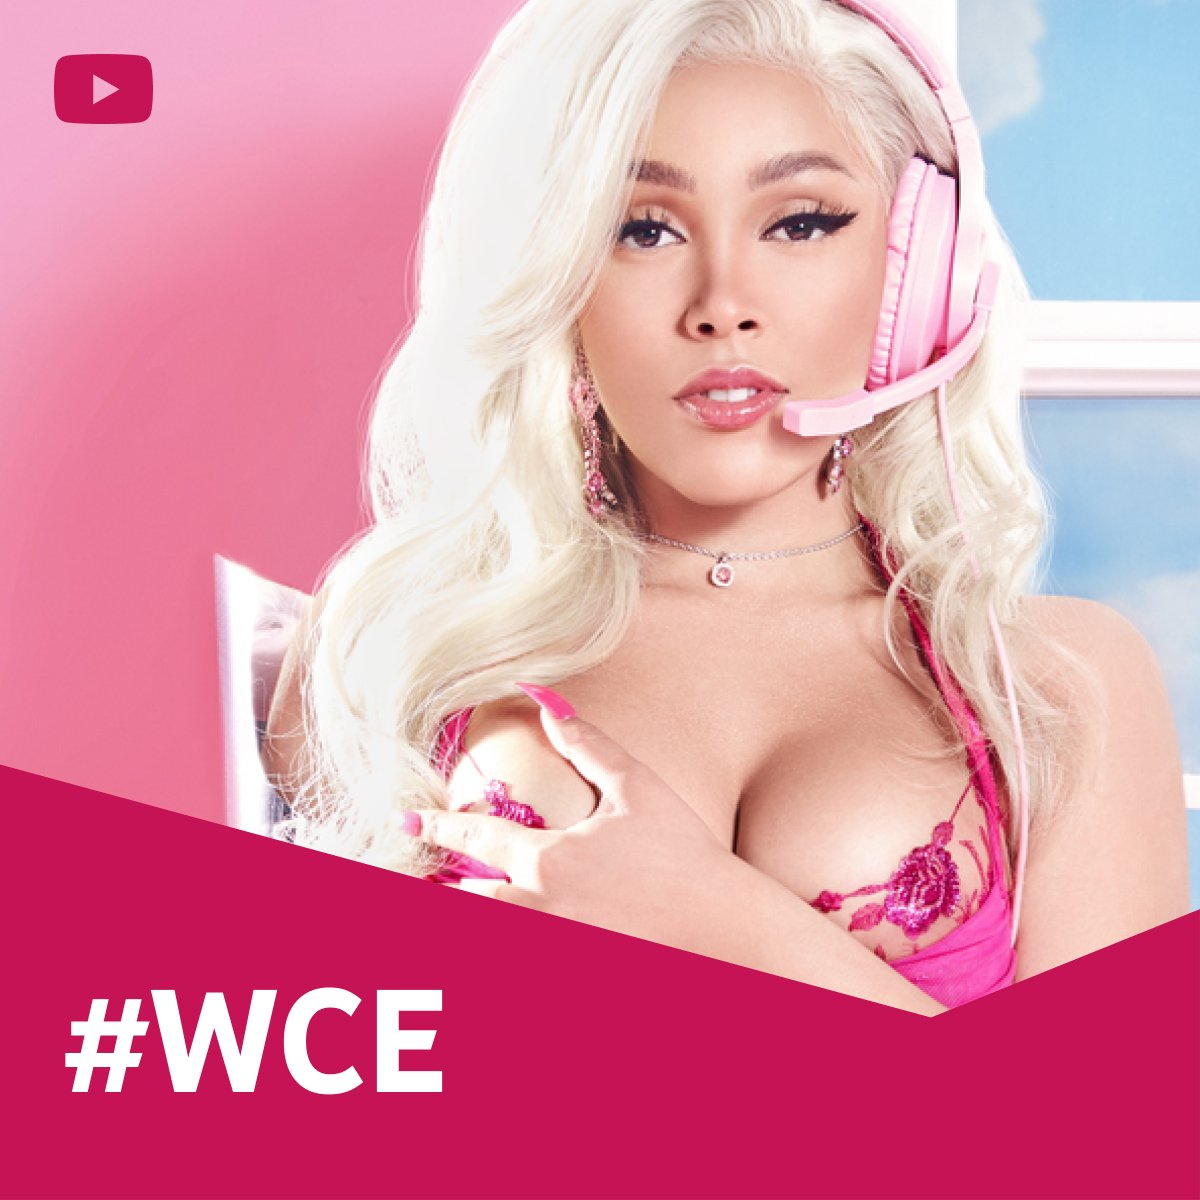 .@youtubemusic 💗 #WCE  https://t.co/4dmMcoODmu https://t.co/hfGYCncYN1